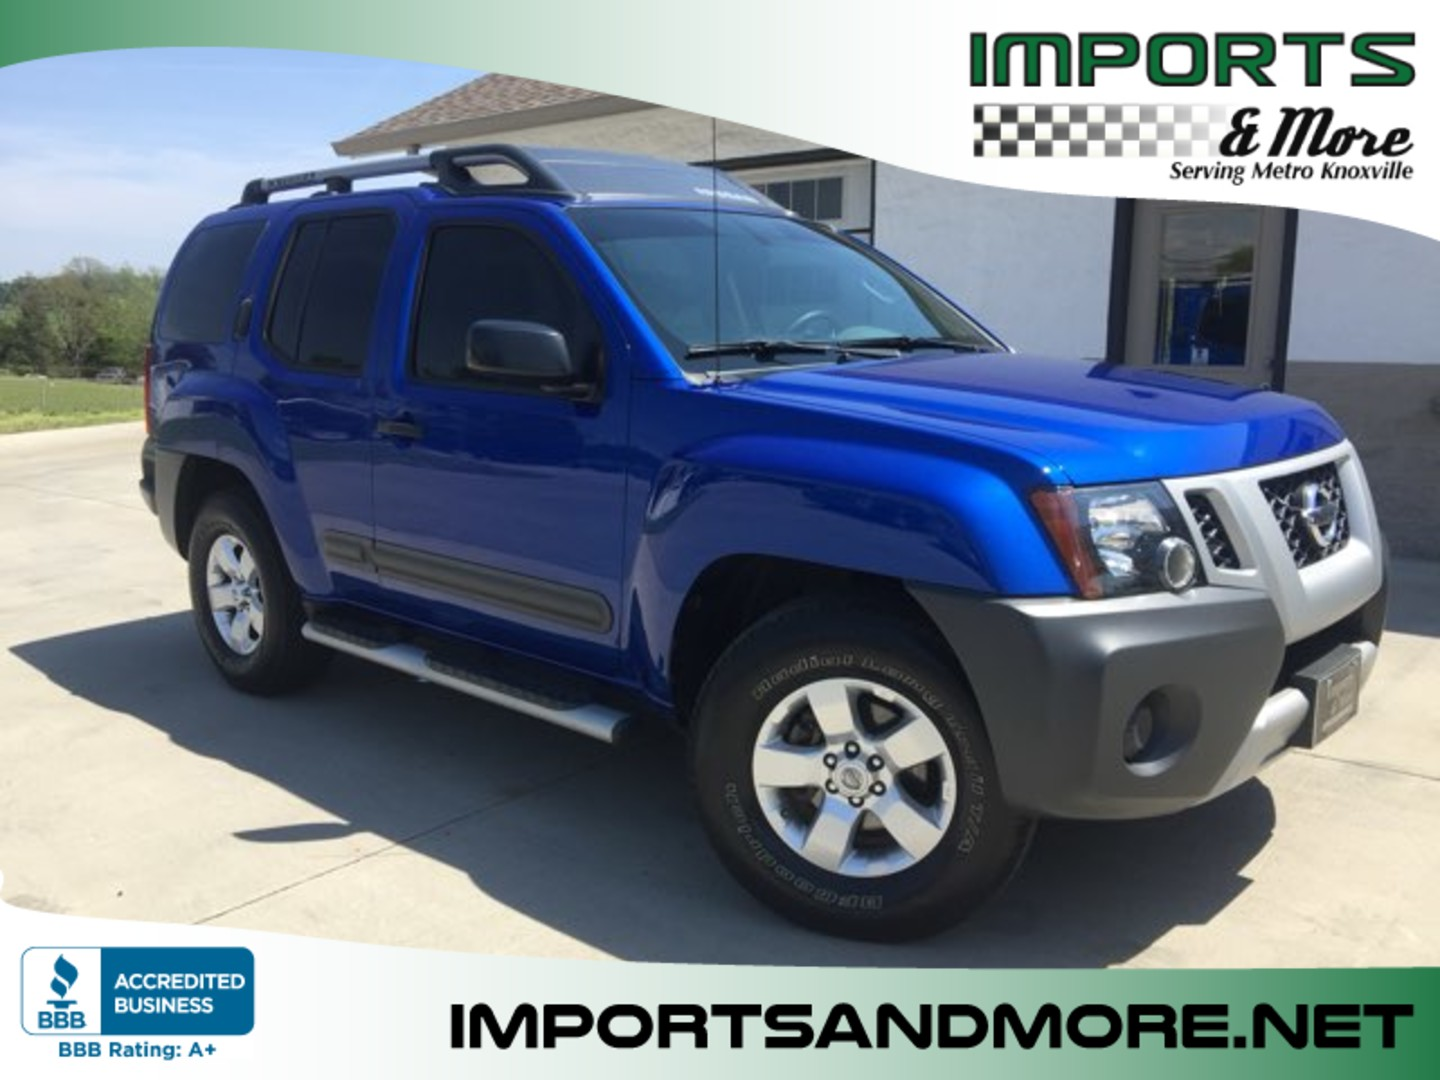 2013 nissan xterra s imports and more inc 2013 nissan xterra s imports and more inc in lenoir city tn vanachro Choice Image